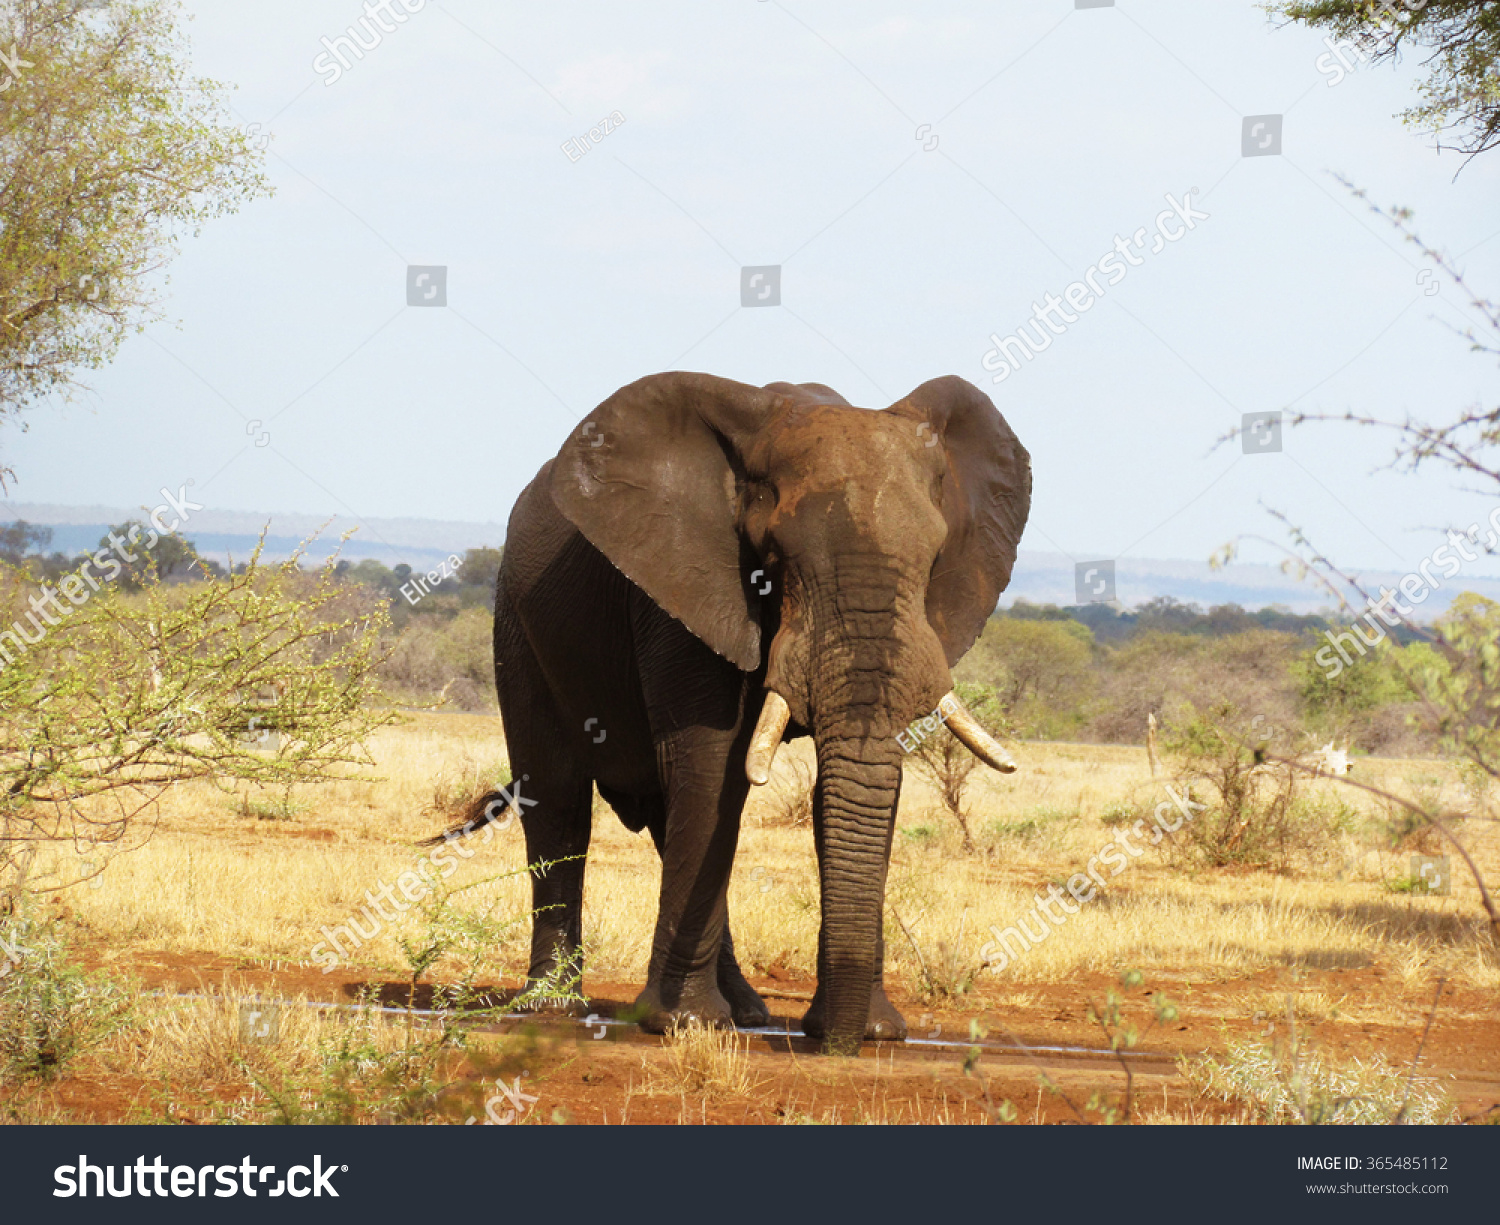 African Elephant enjoying water in the hot summer days of the National Park South Africa